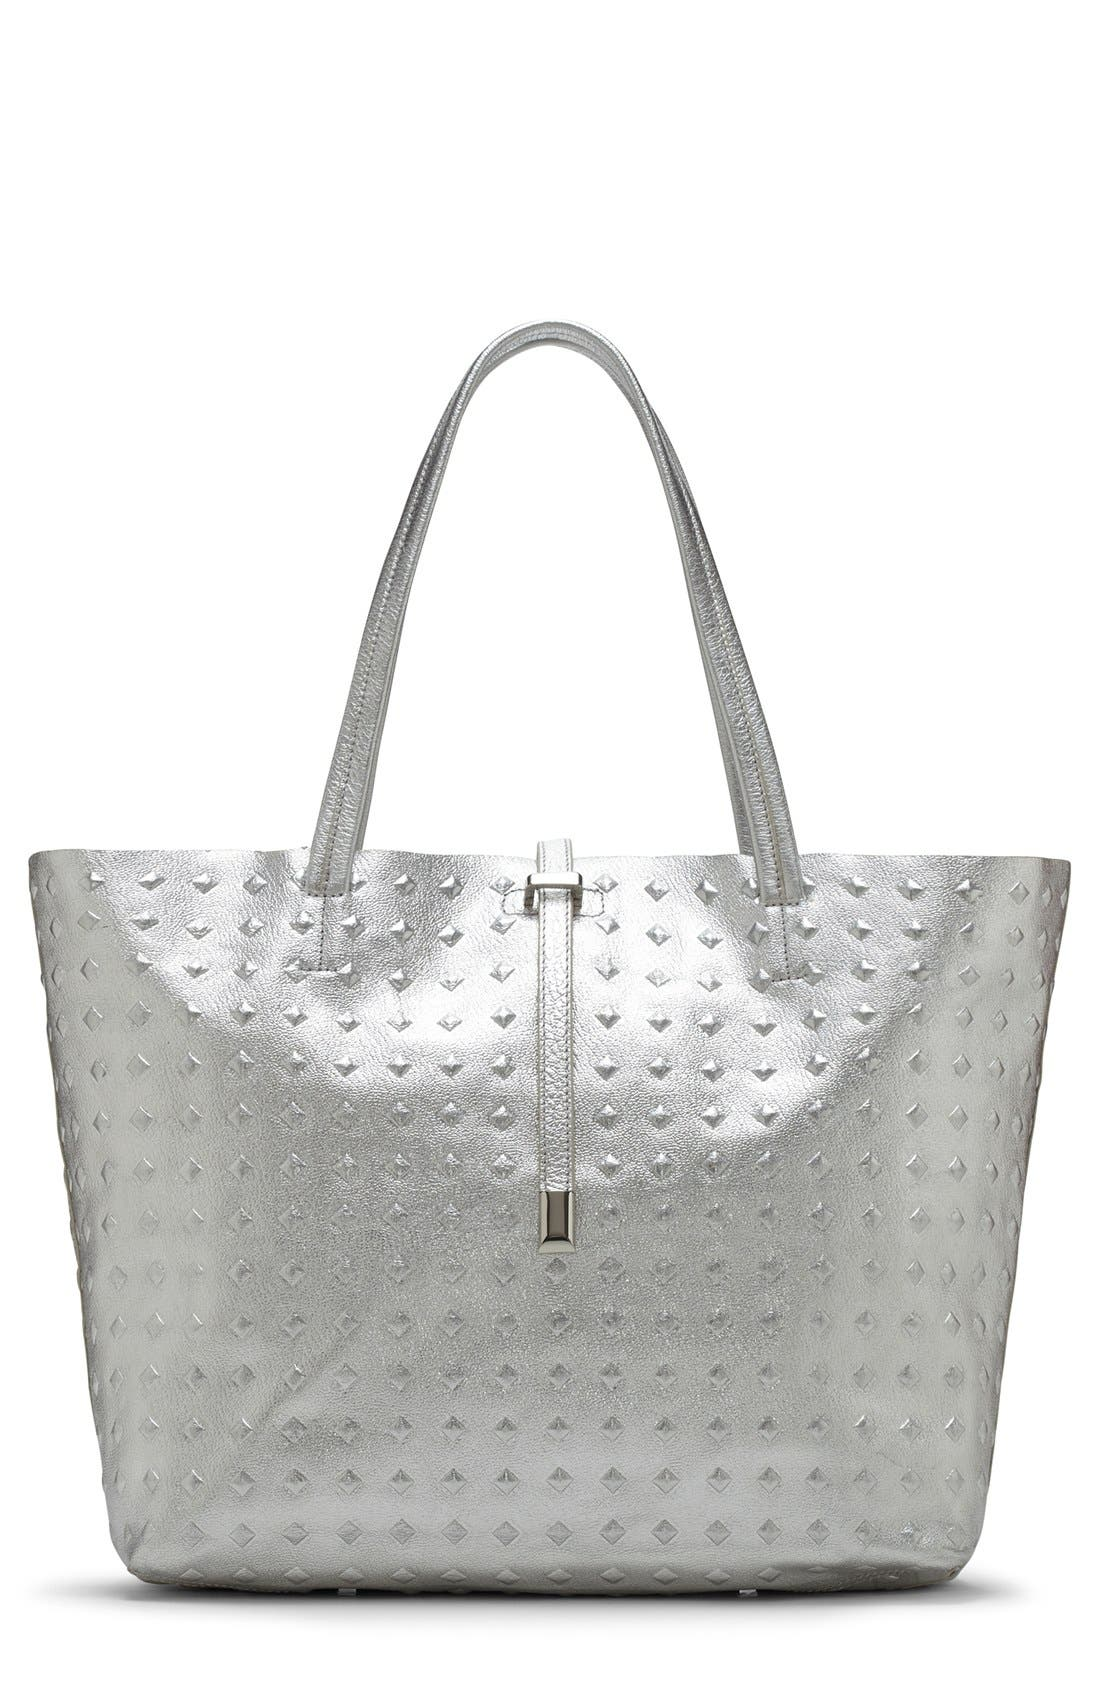 Alternate Image 1 Selected - Vince Camuto 'Leila' Tote